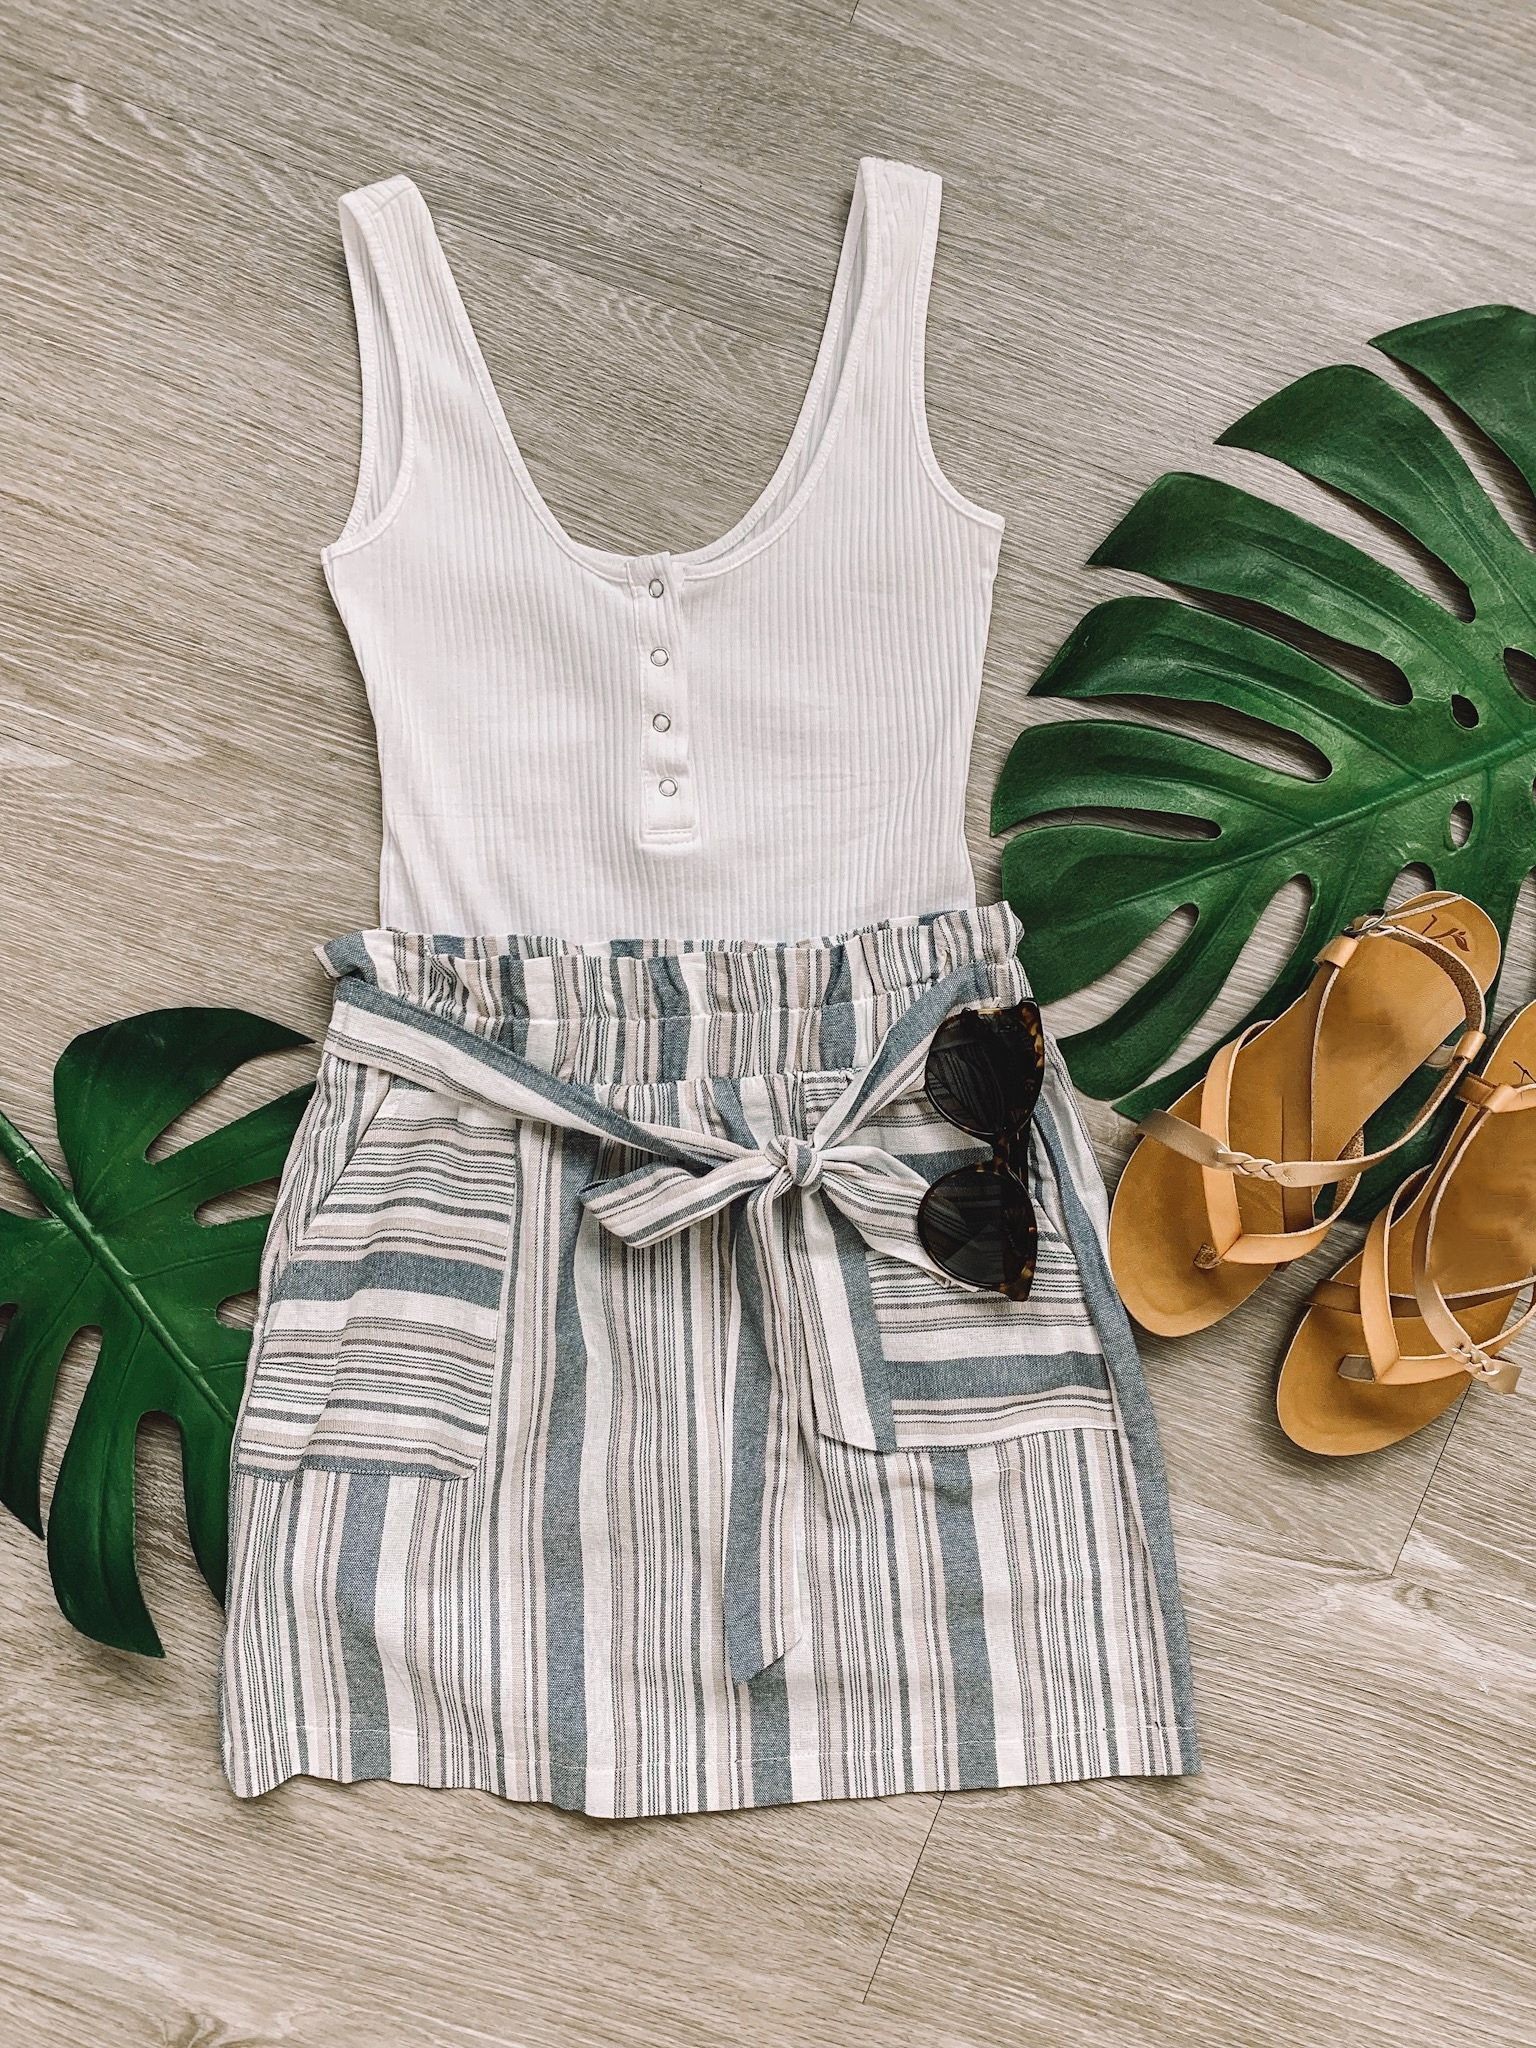 Summer Outfit with Skirt #vacationoutfits